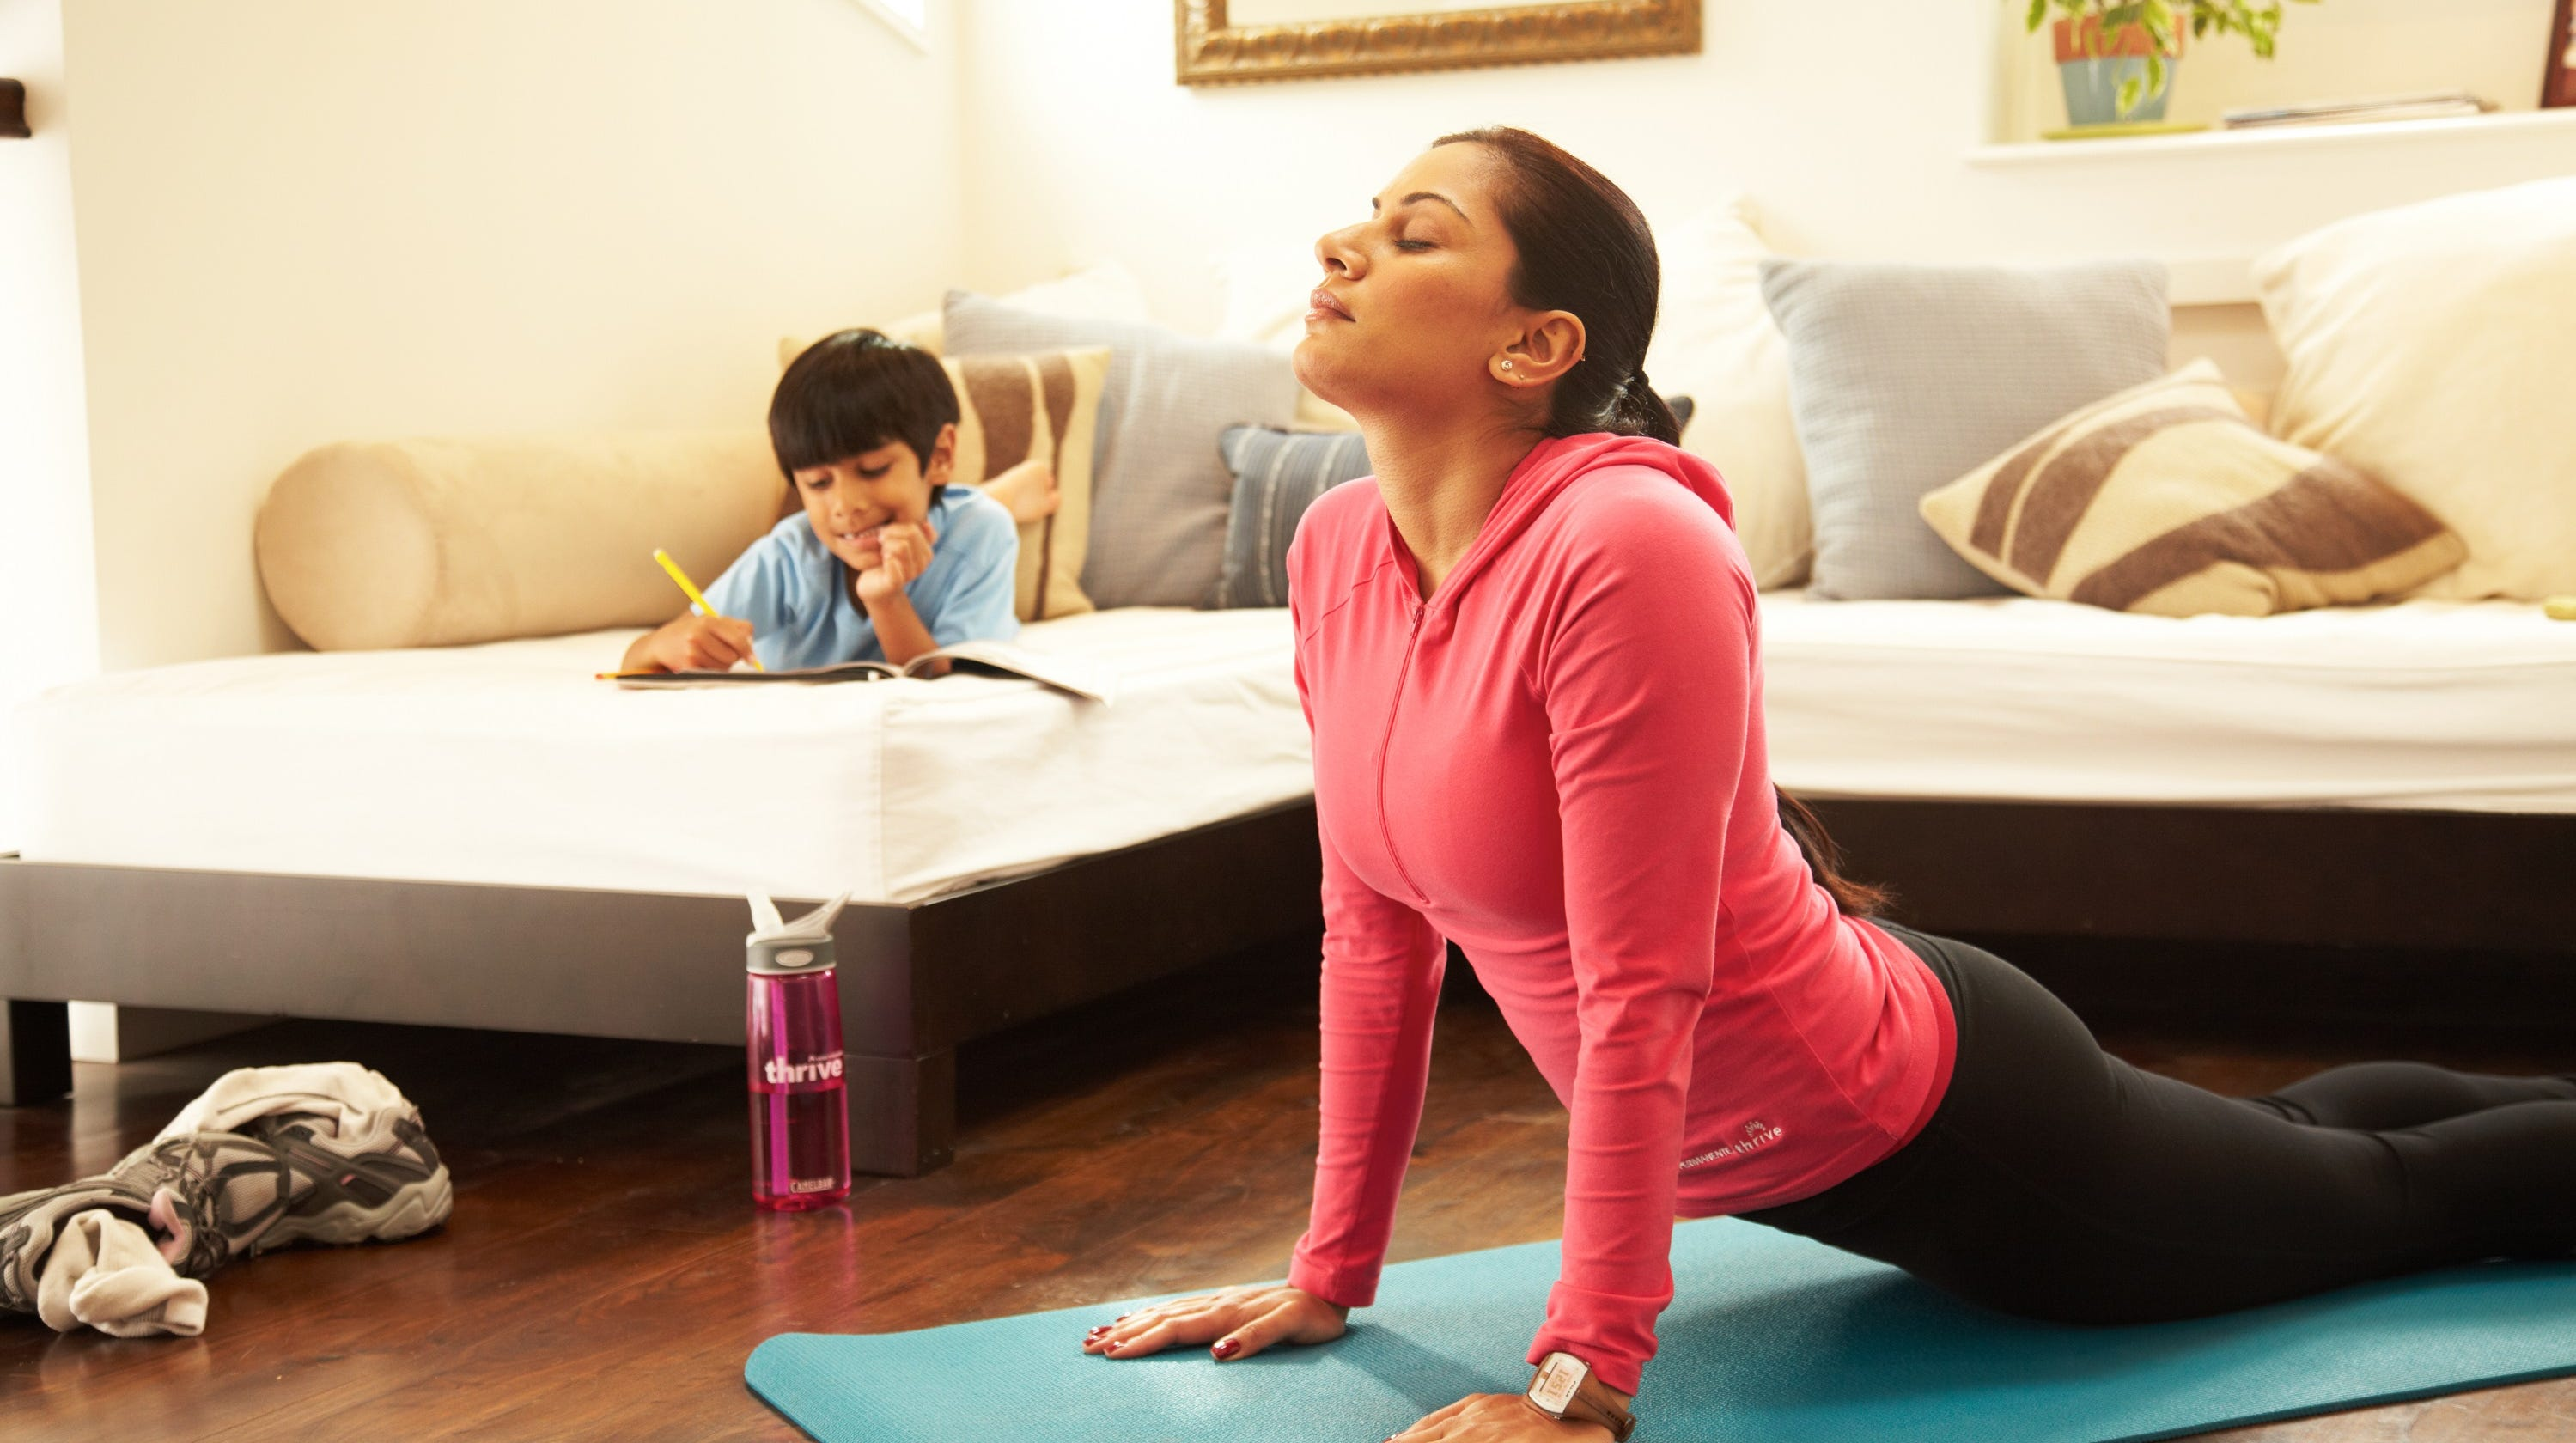 Exercising at home is just one of the ways you can make wellness a priority in your everyday life.